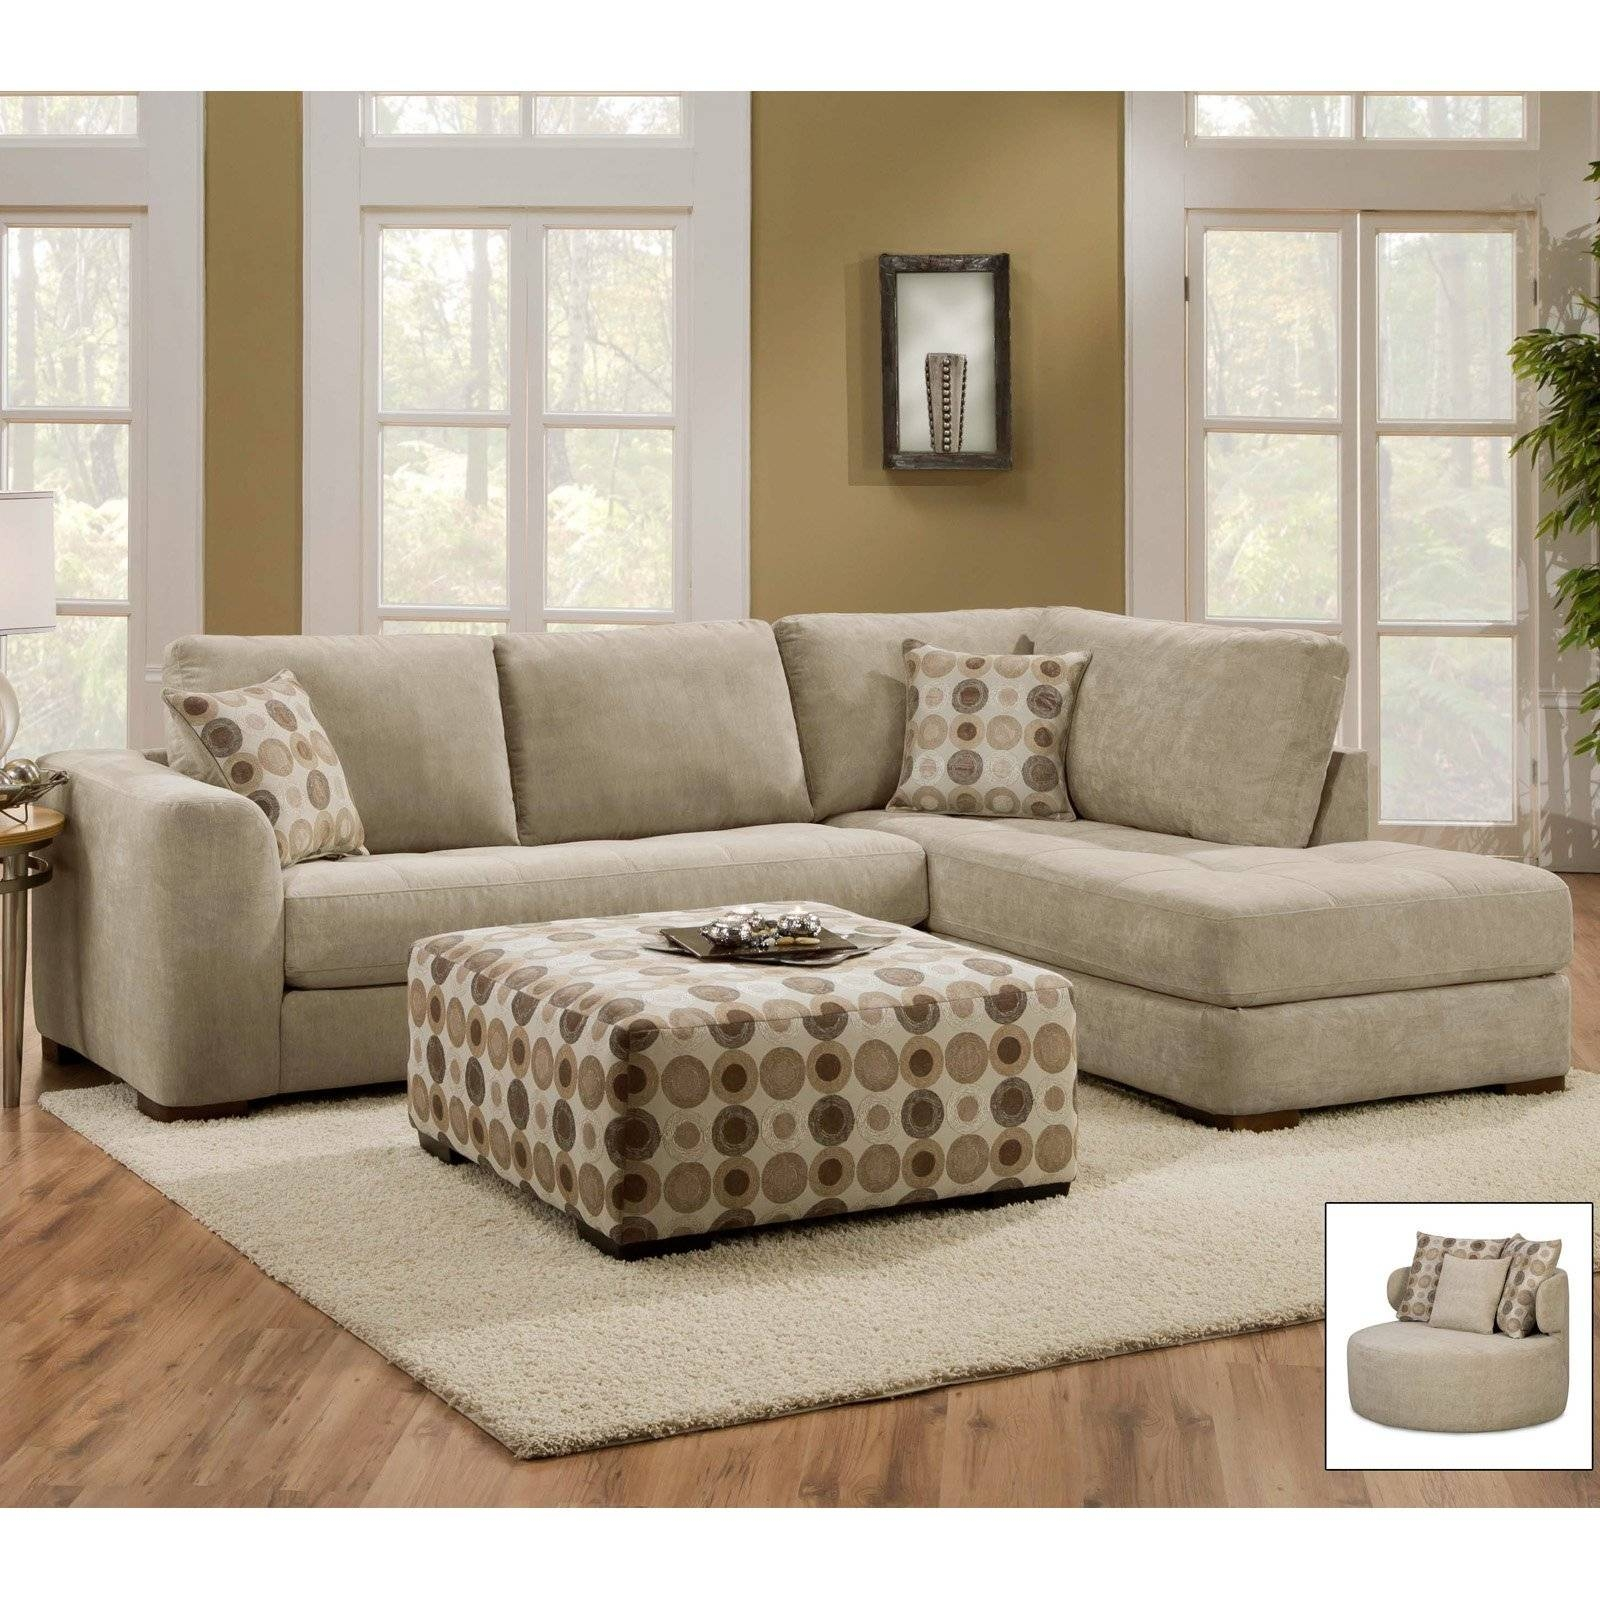 Best 2 Piece Sectional Sofa 23 For Your Living Room Sofa Ideas throughout Small 2 Piece Sectional Sofas (Image 6 of 30)